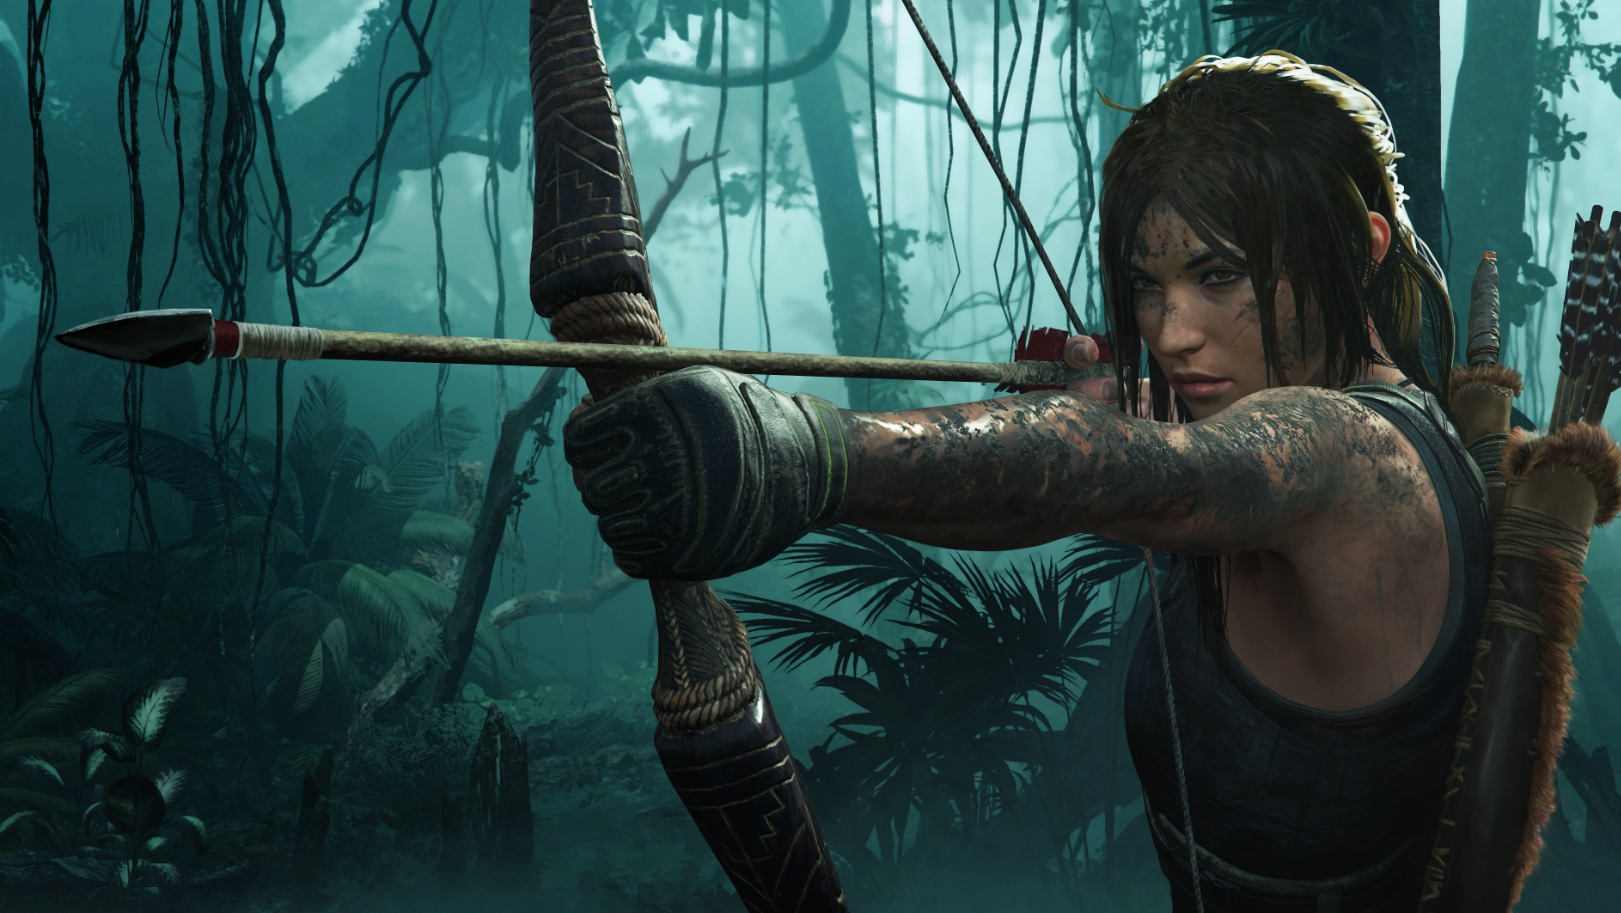 Shadow of the Tomb Raider Photo Mode Update Lets You